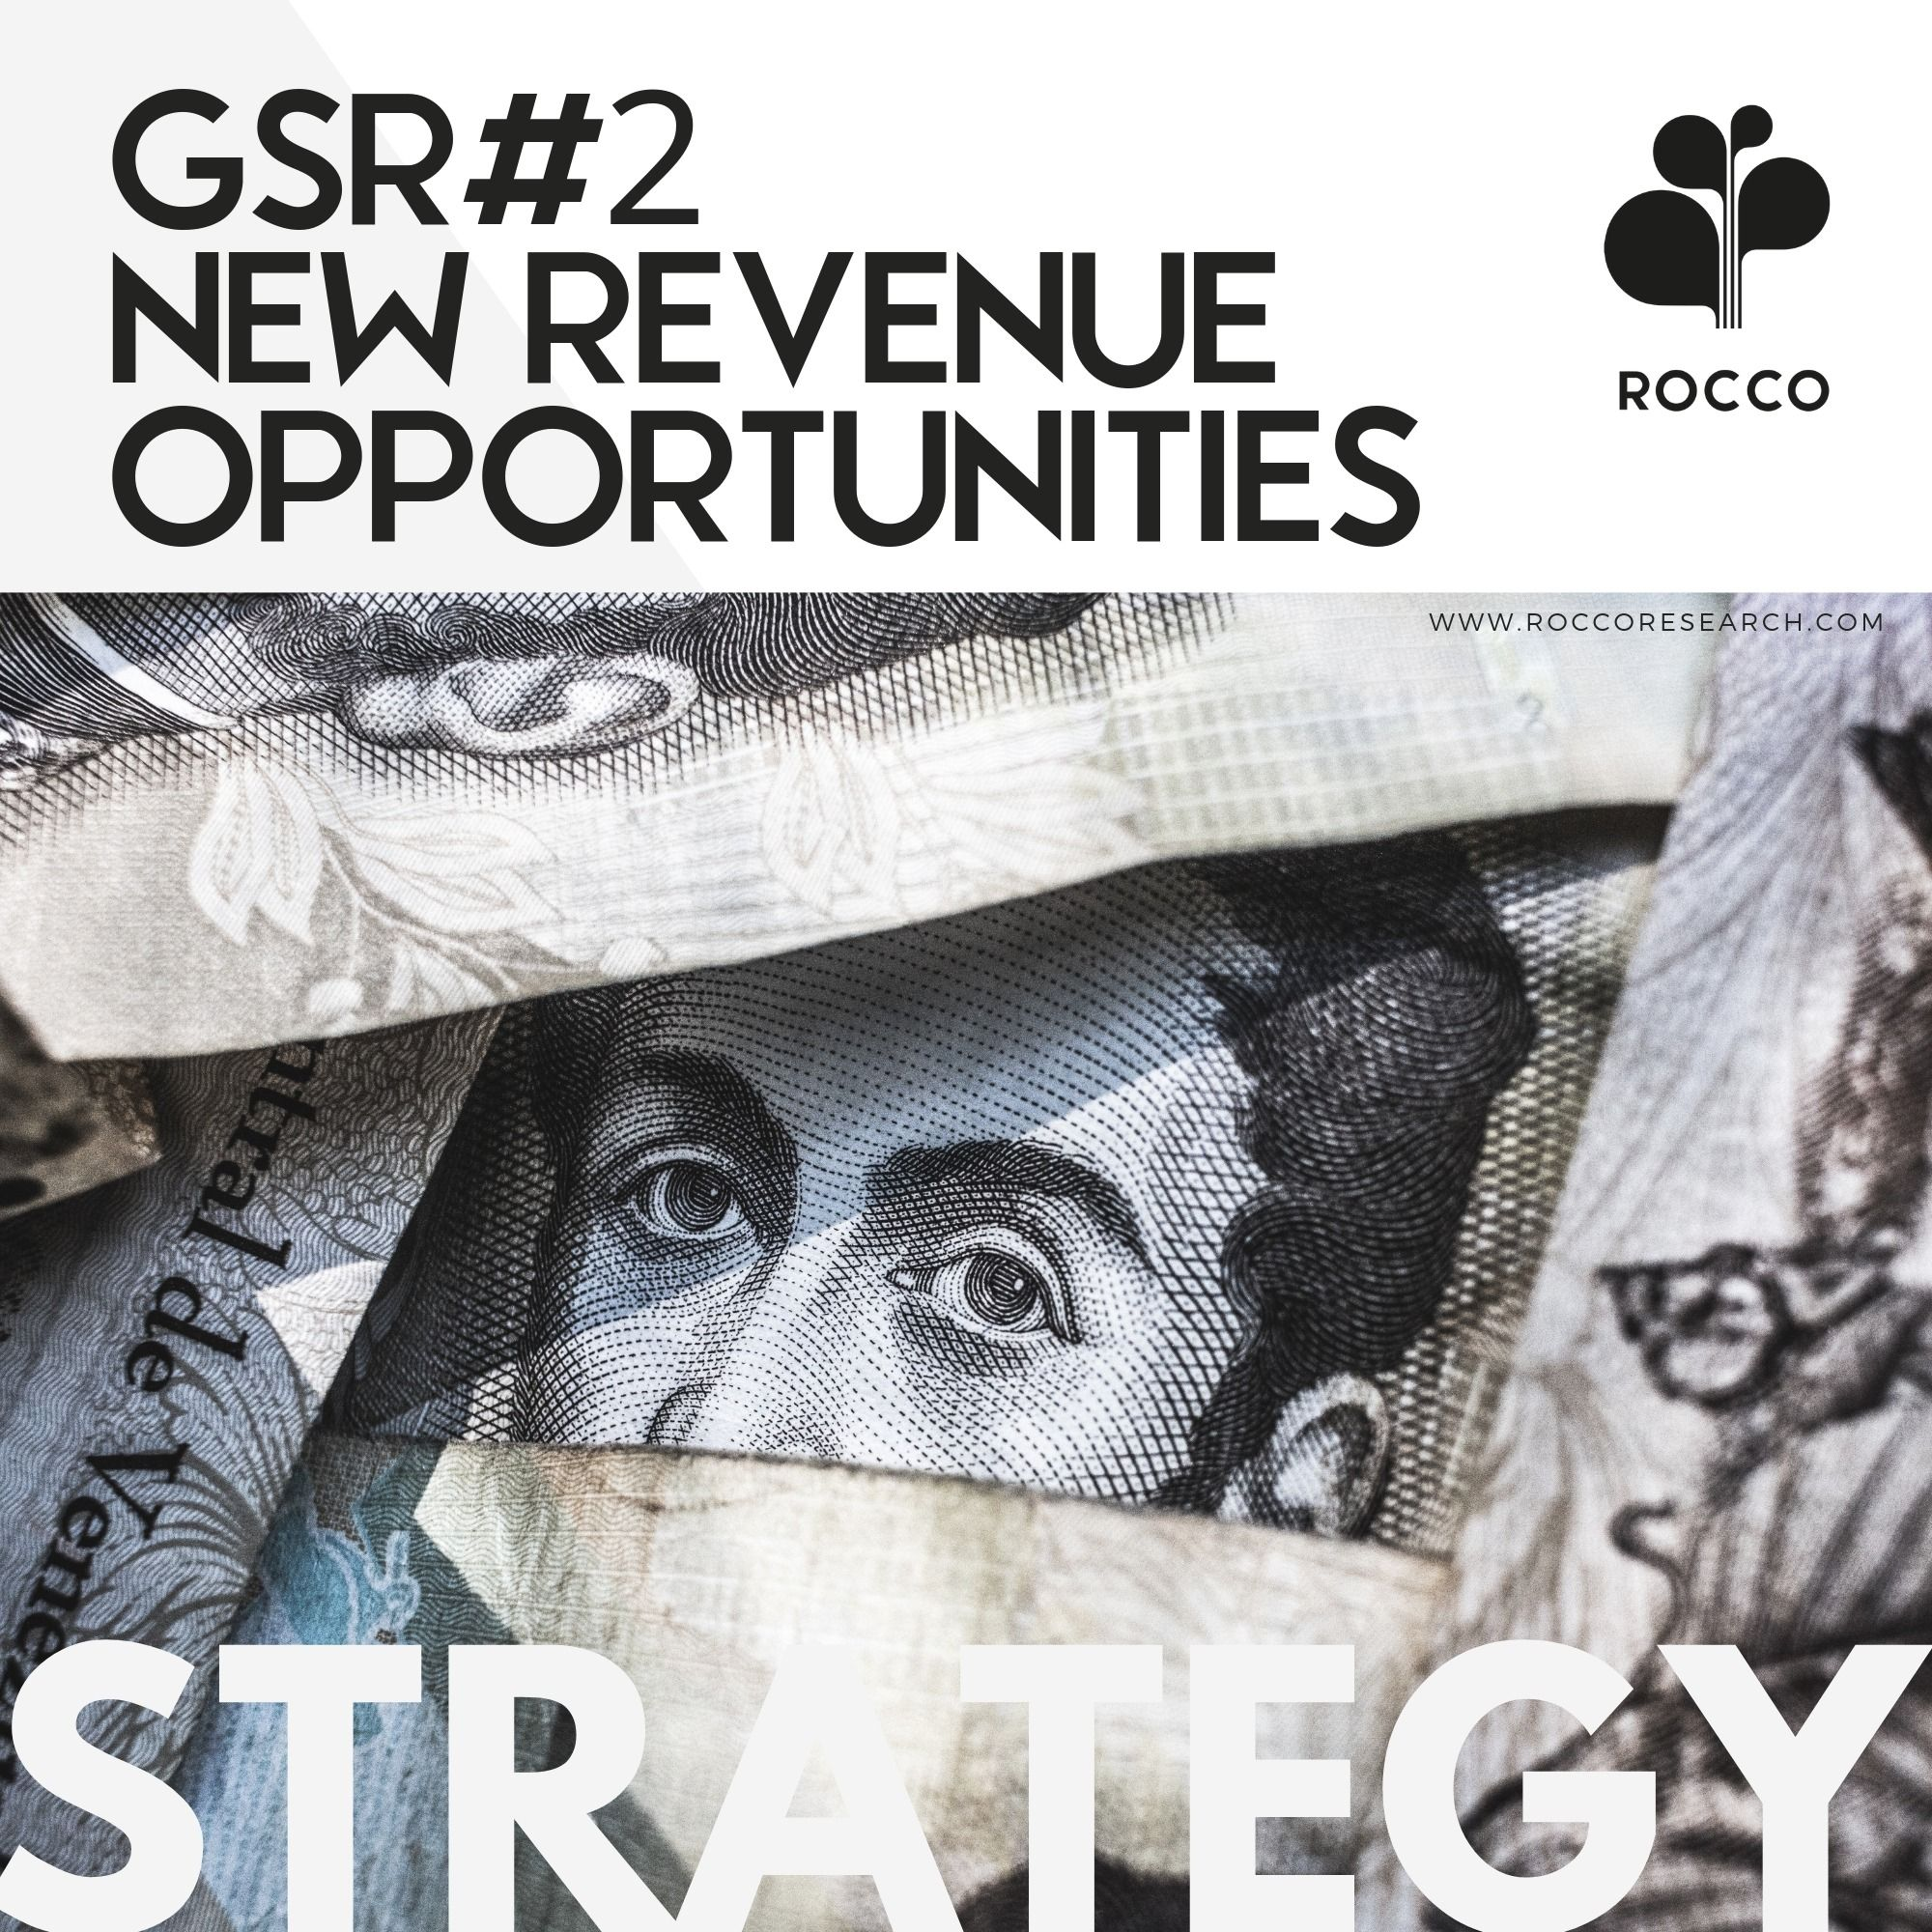 GSR#2 New Revenue Opportunities Event, 25th and 26th September 2019, Hong Kong